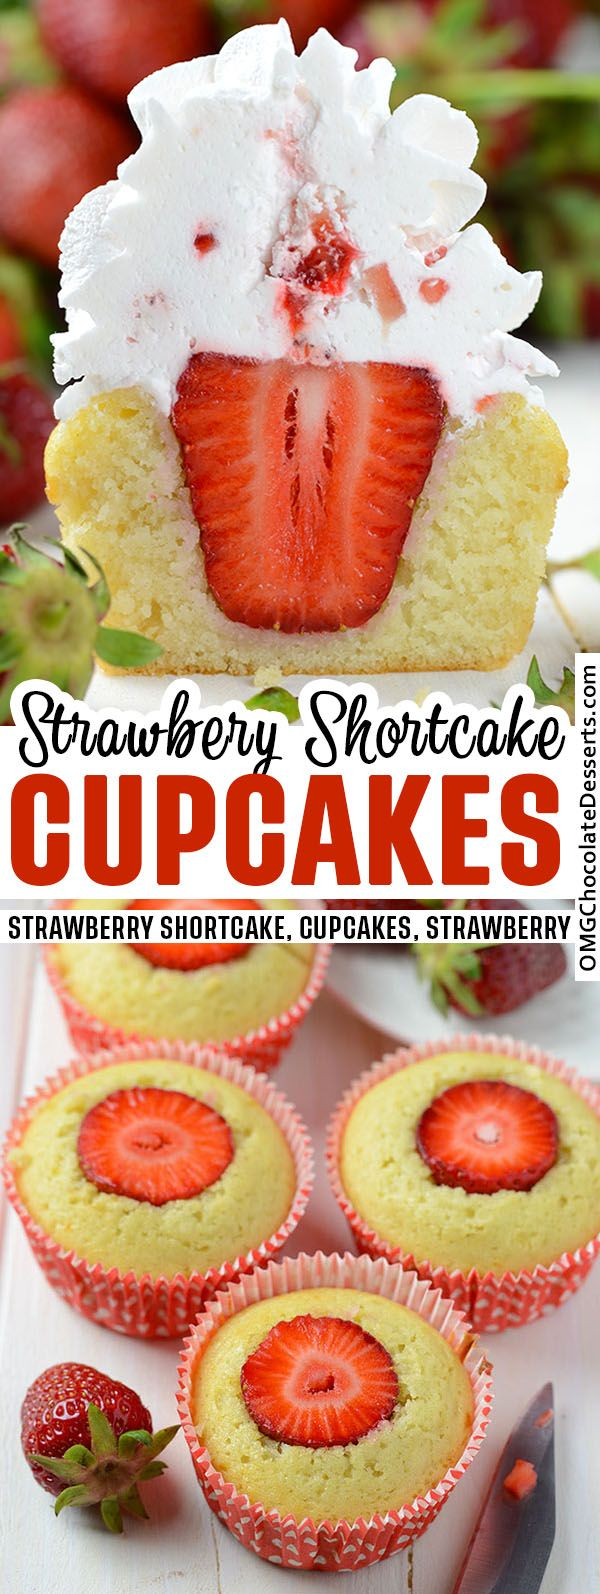 Strawberry Shortcake Cupcakes are my favorite vanilla cupcake recipe filled with fresh strawberries and a whipped cream frosting! These easy cupcakes are a delicious twist on a strawberry shortcake recipe. #strawberry #shortcake #cupcakes Strawberry Cupcake Recipes, Strawberry Shortcake Cupcake, Cream Filled Cupcakes, Mocha Cupcakes, Banana Cupcakes, Velvet Cupcakes, Vanilla Cupcakes, Velvet Cake, Easy Cake Recipes